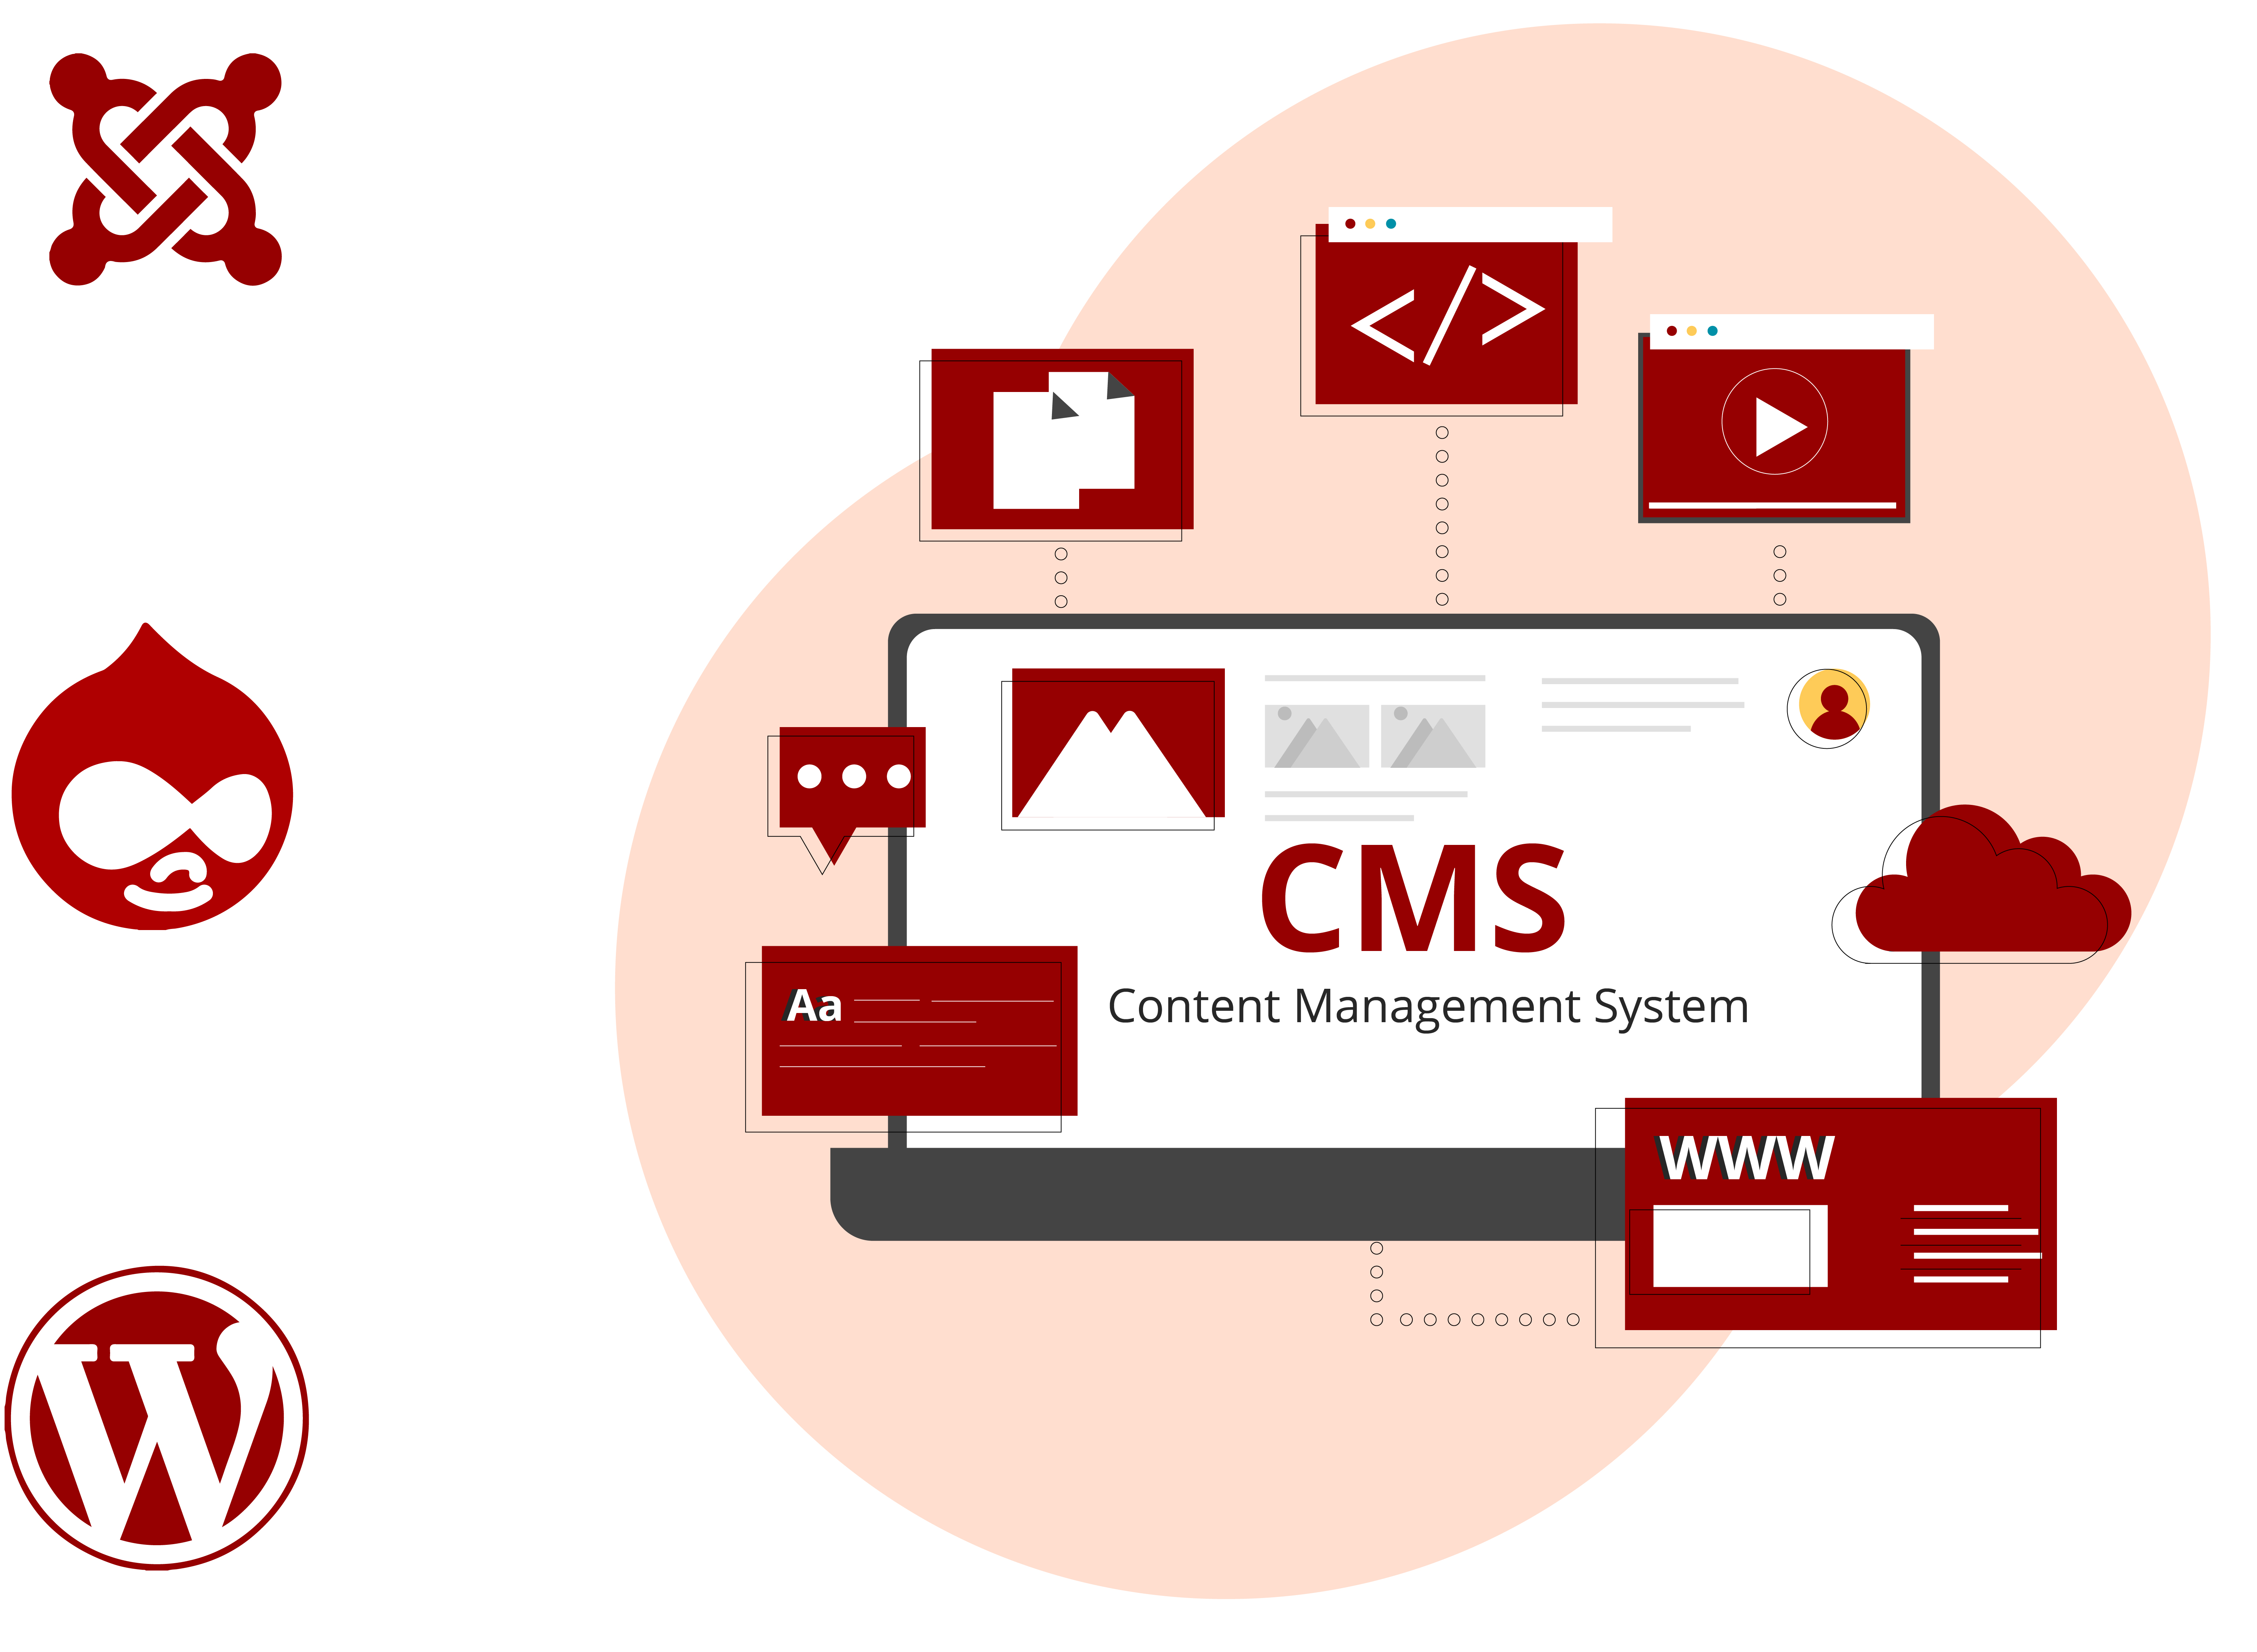 CMS Development Services from 'corePHP' - Each CMS has its own its own advantages for different applications